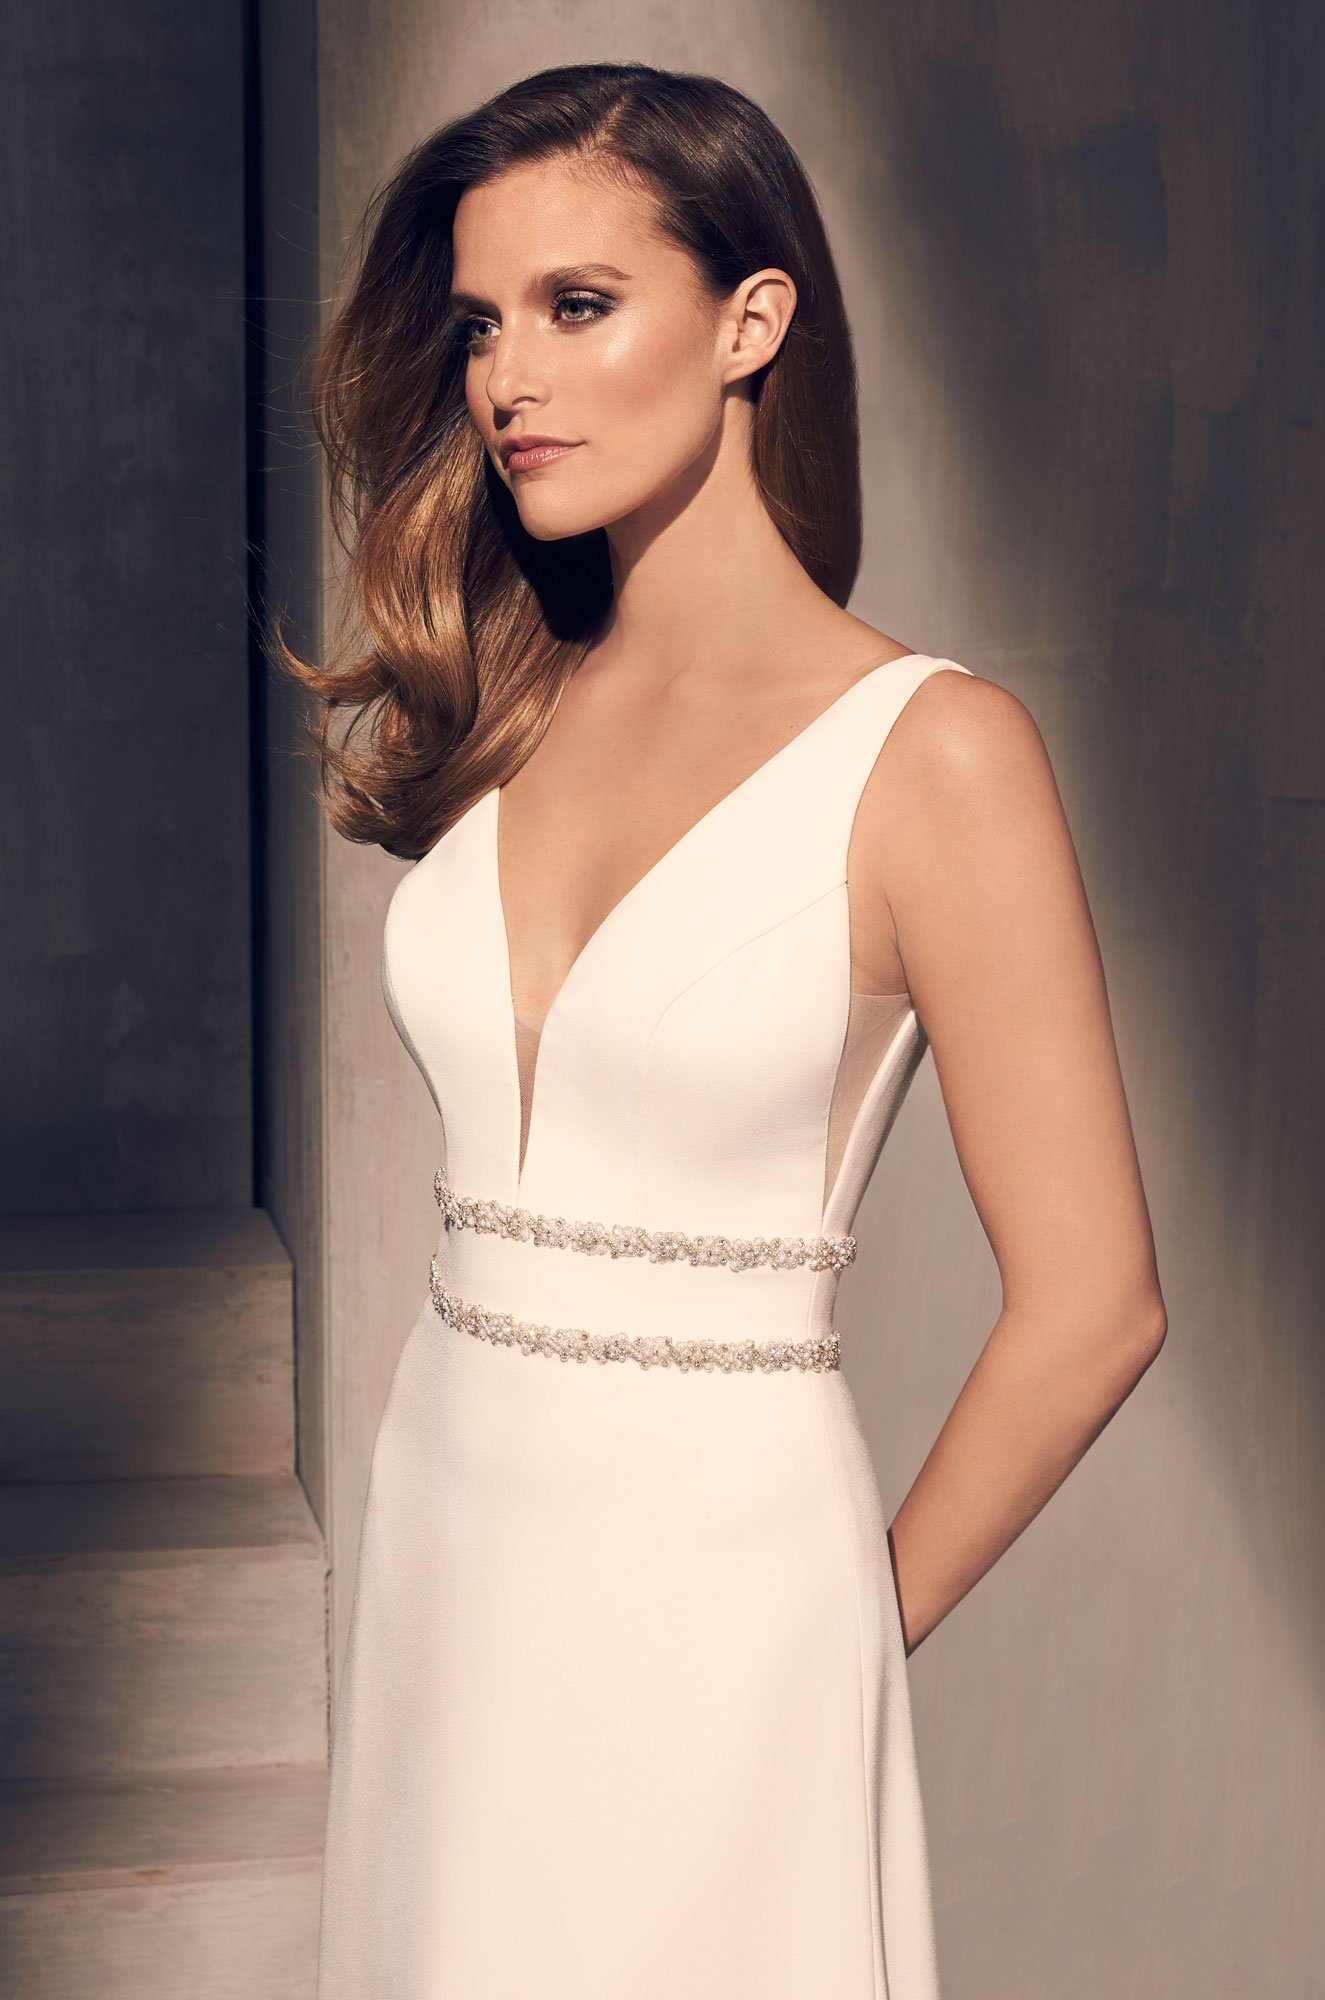 Dazzling Crêpe Wedding Dress - Style #2214 | Mikaella Bridal